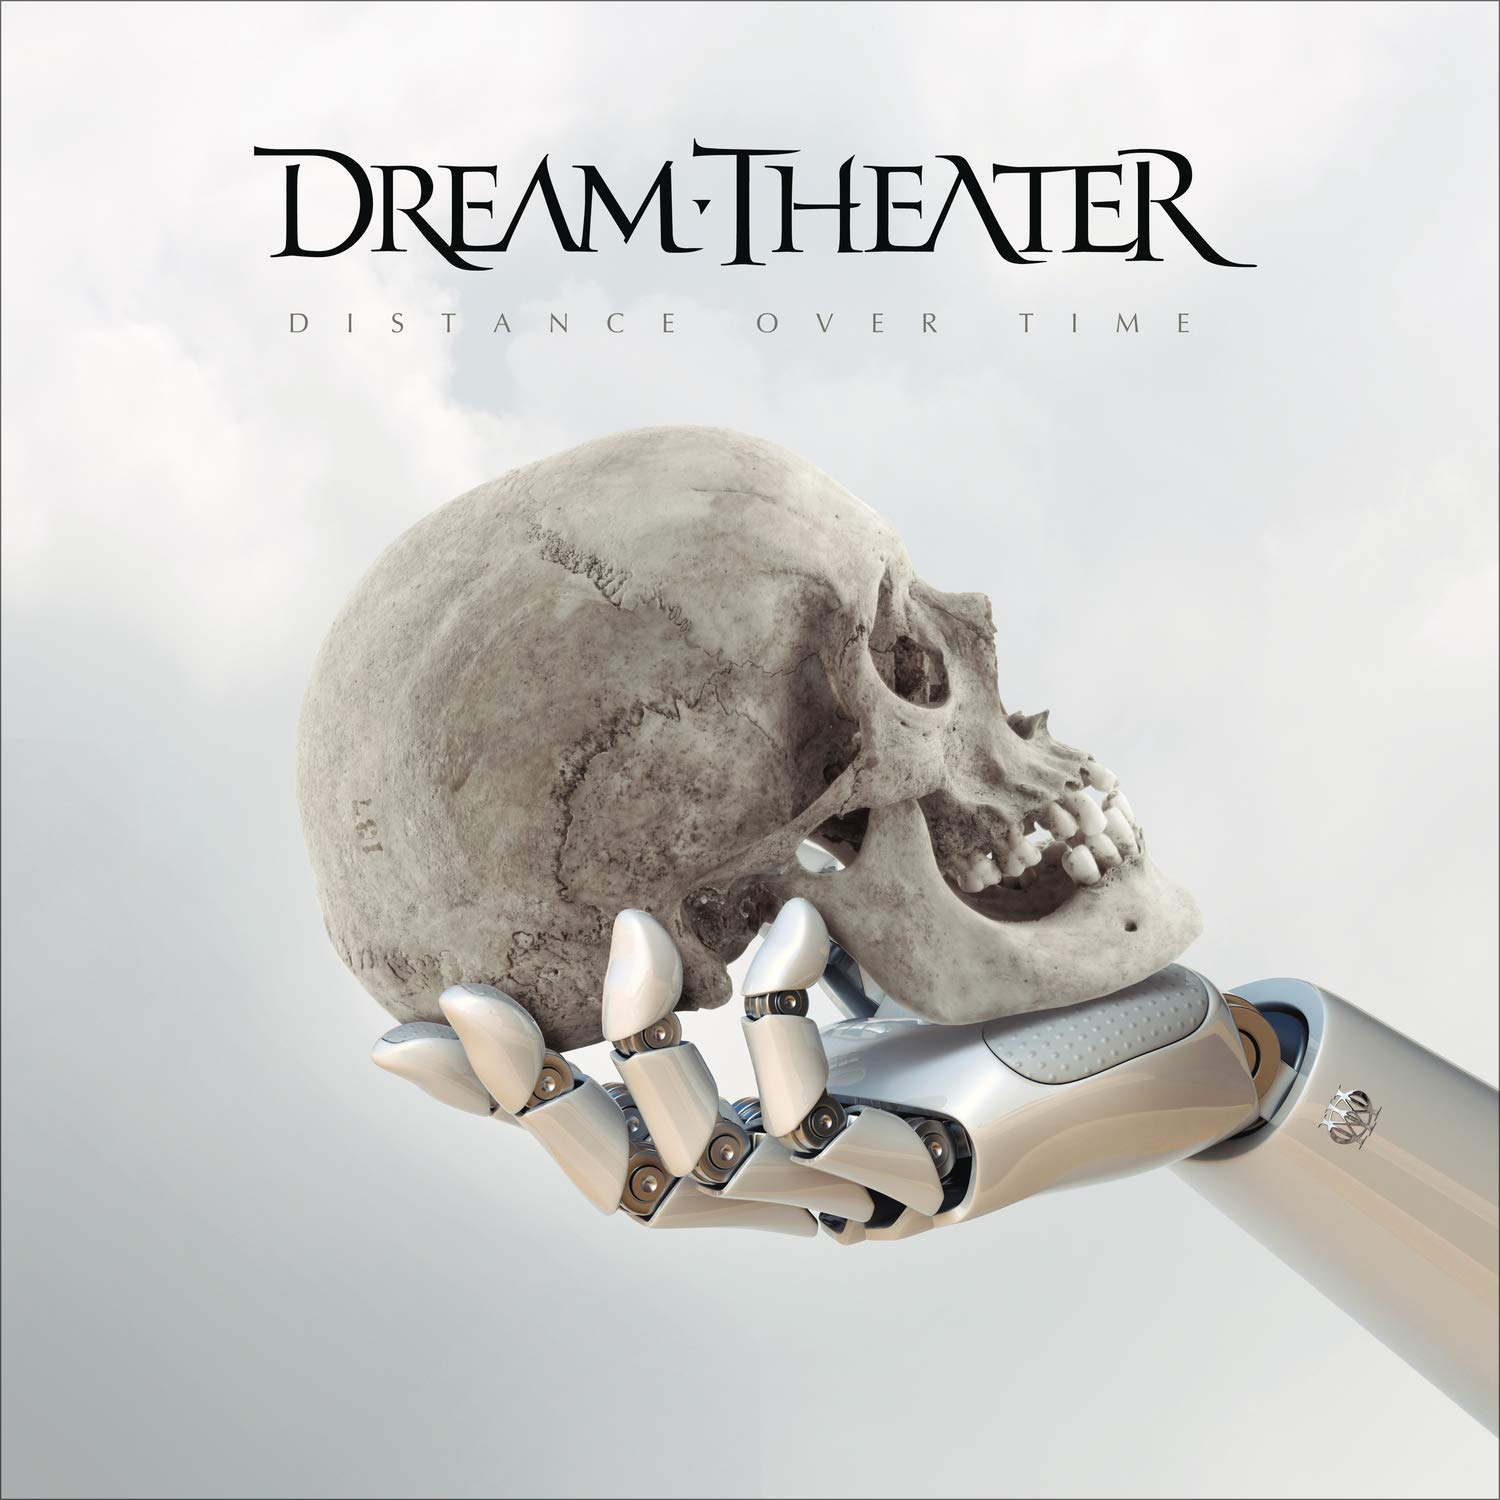 Фото - Dream Theater. Distance Over Time (2 CD + DVD + Blu-Ray) dream theater live at luna park blu ray